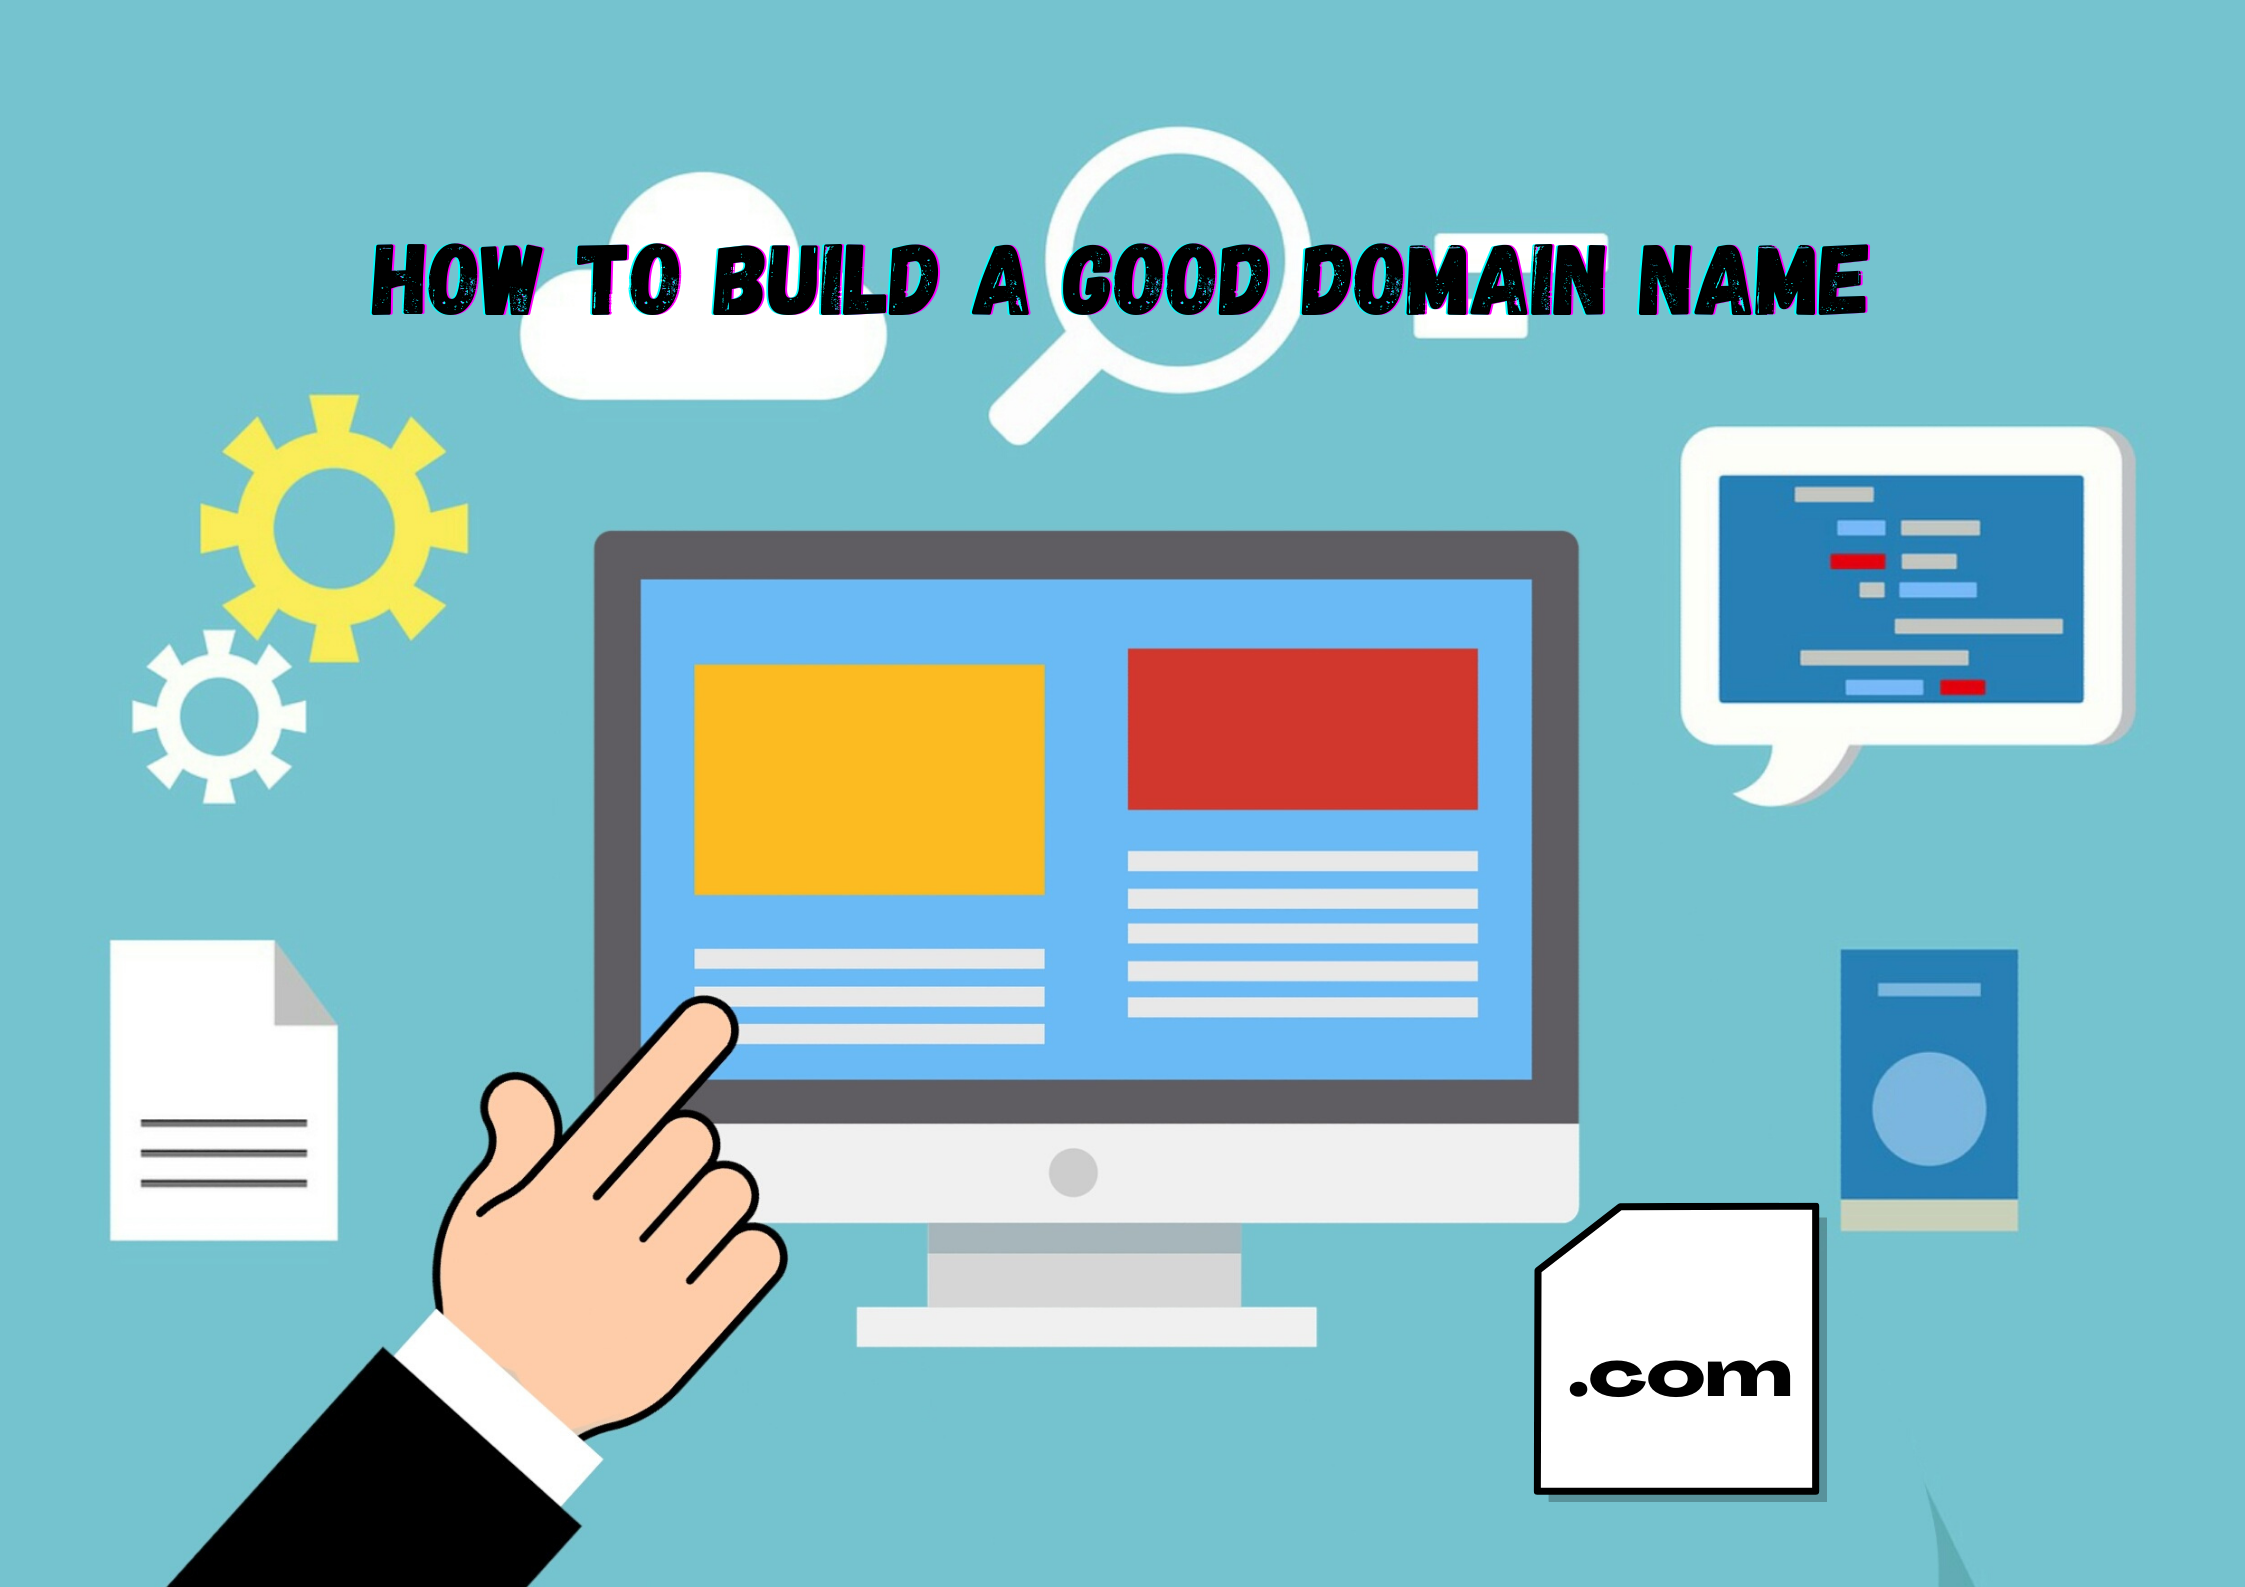 DOMAIN NAME AND HOW TO BUILD IT EFFECTIVELY